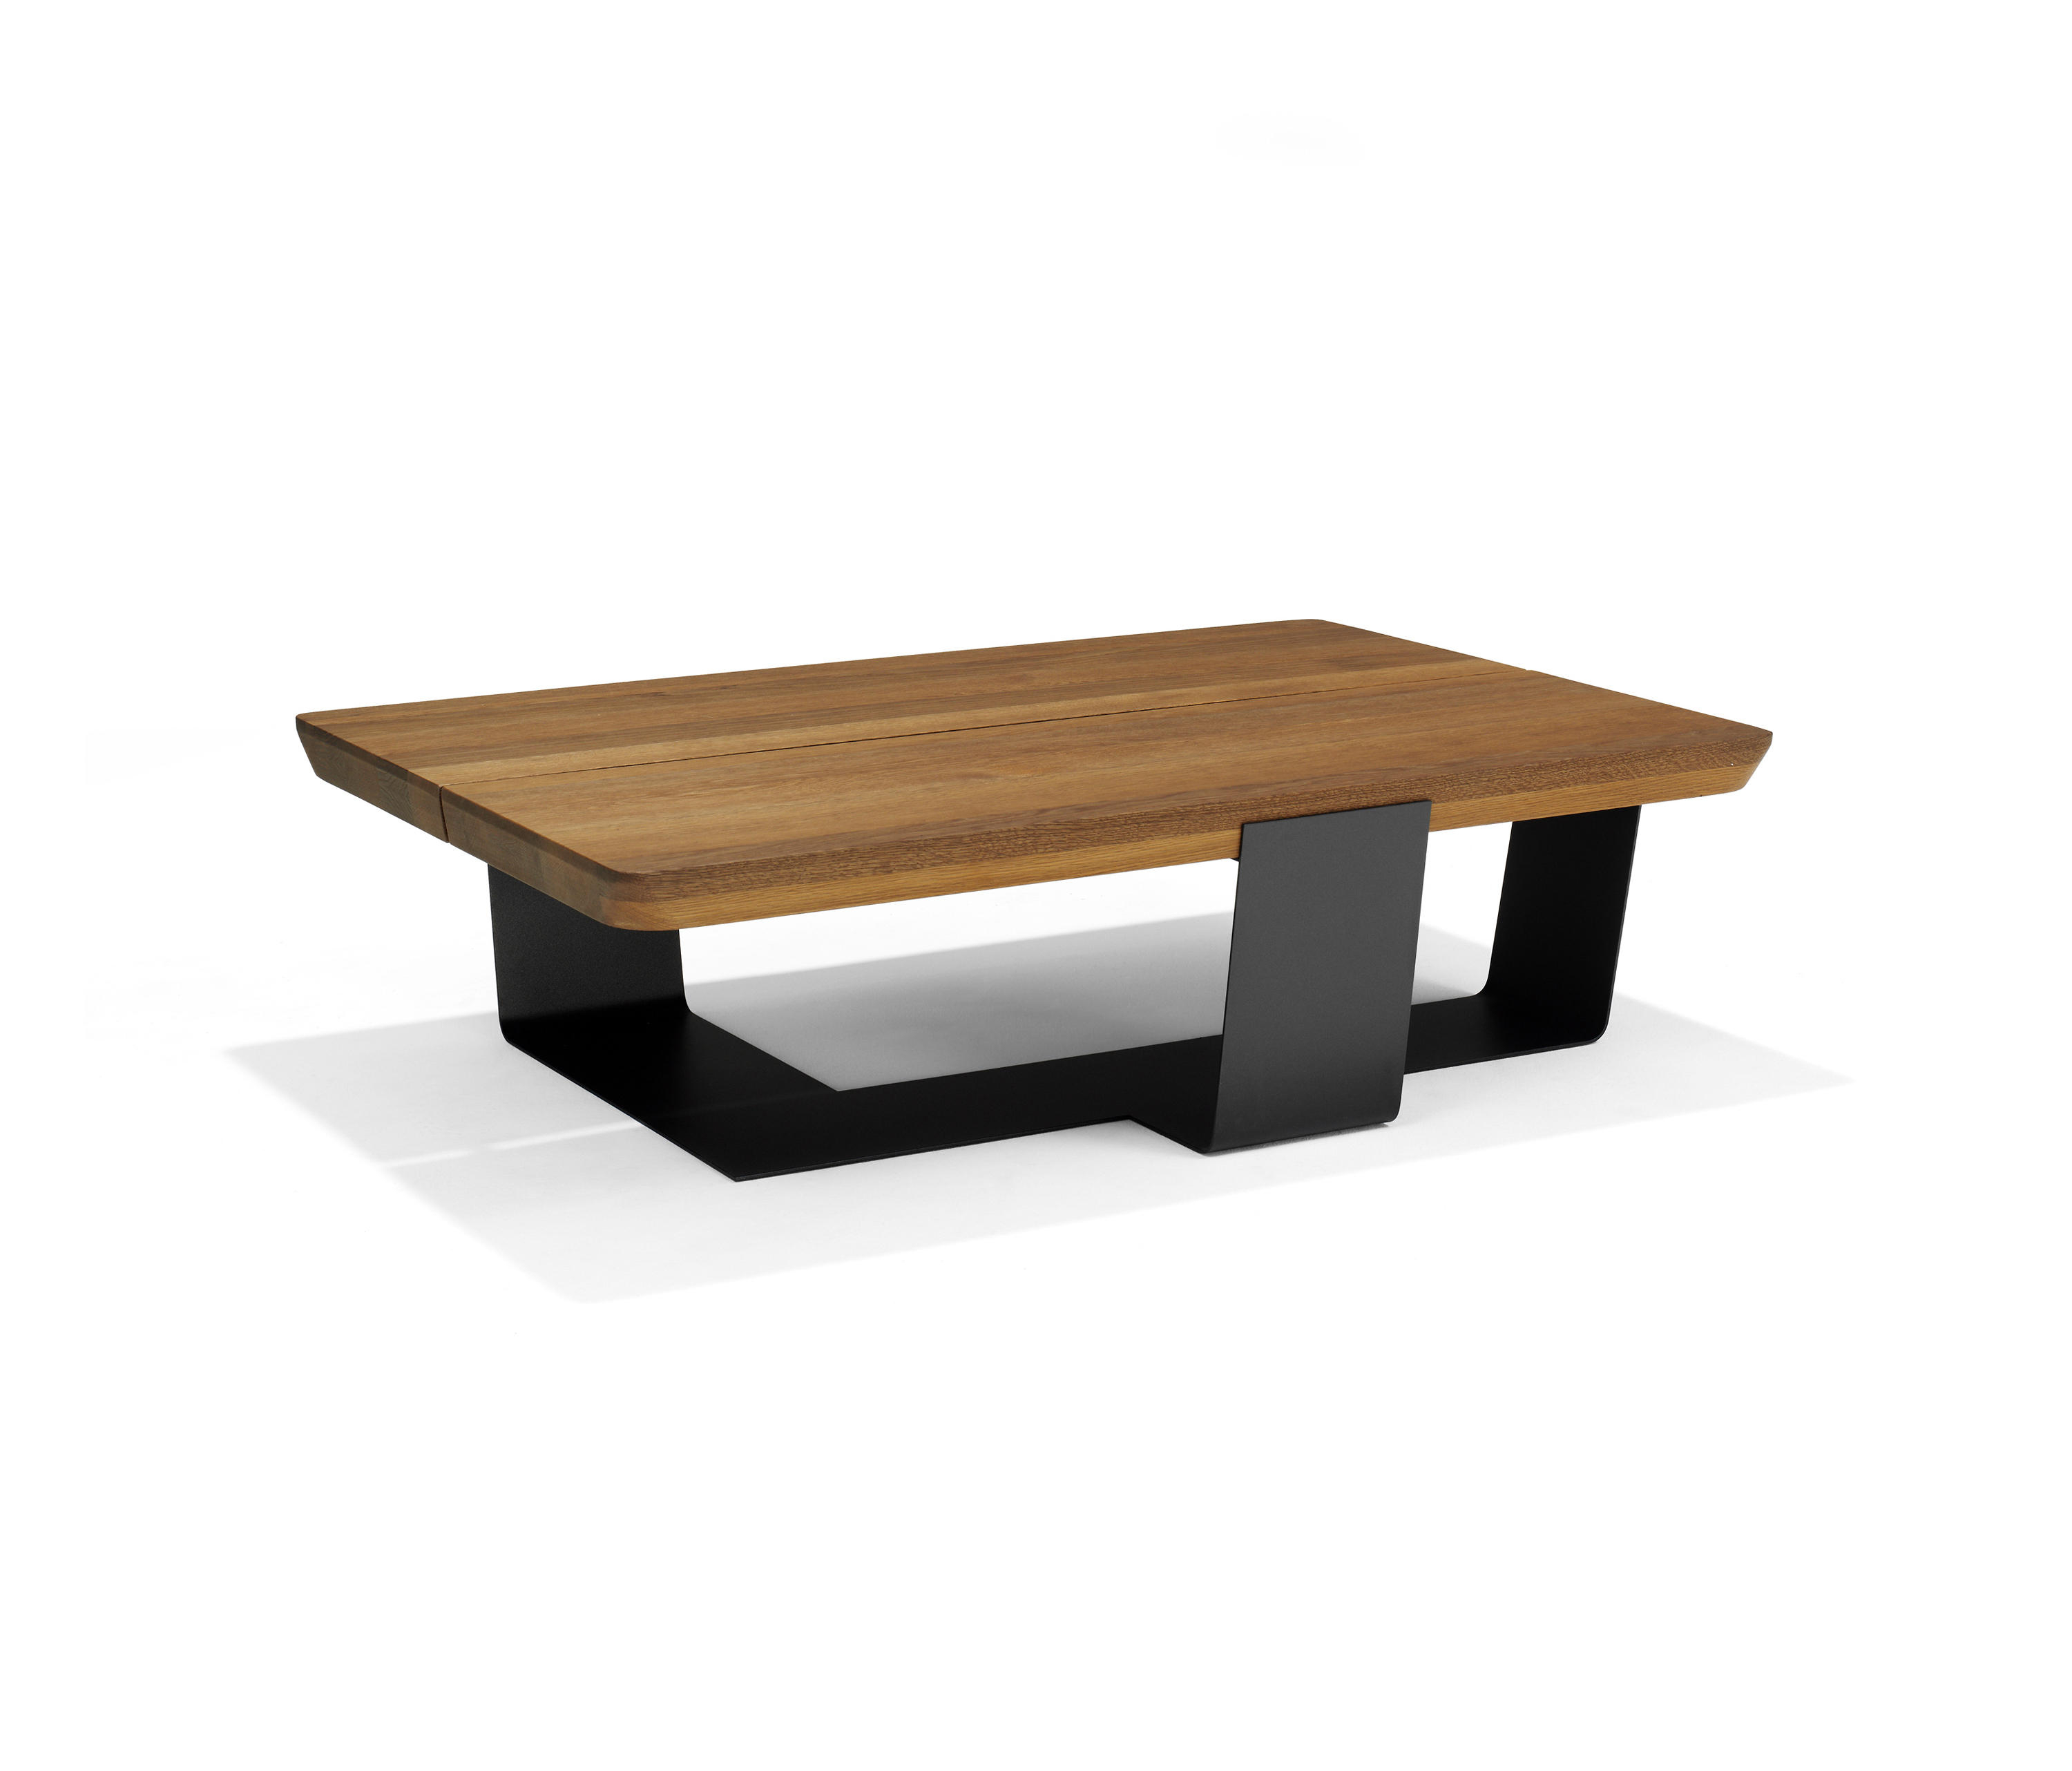 Architonic Within Most Recent Smoked Oak Coffee Tables (View 12 of 20)